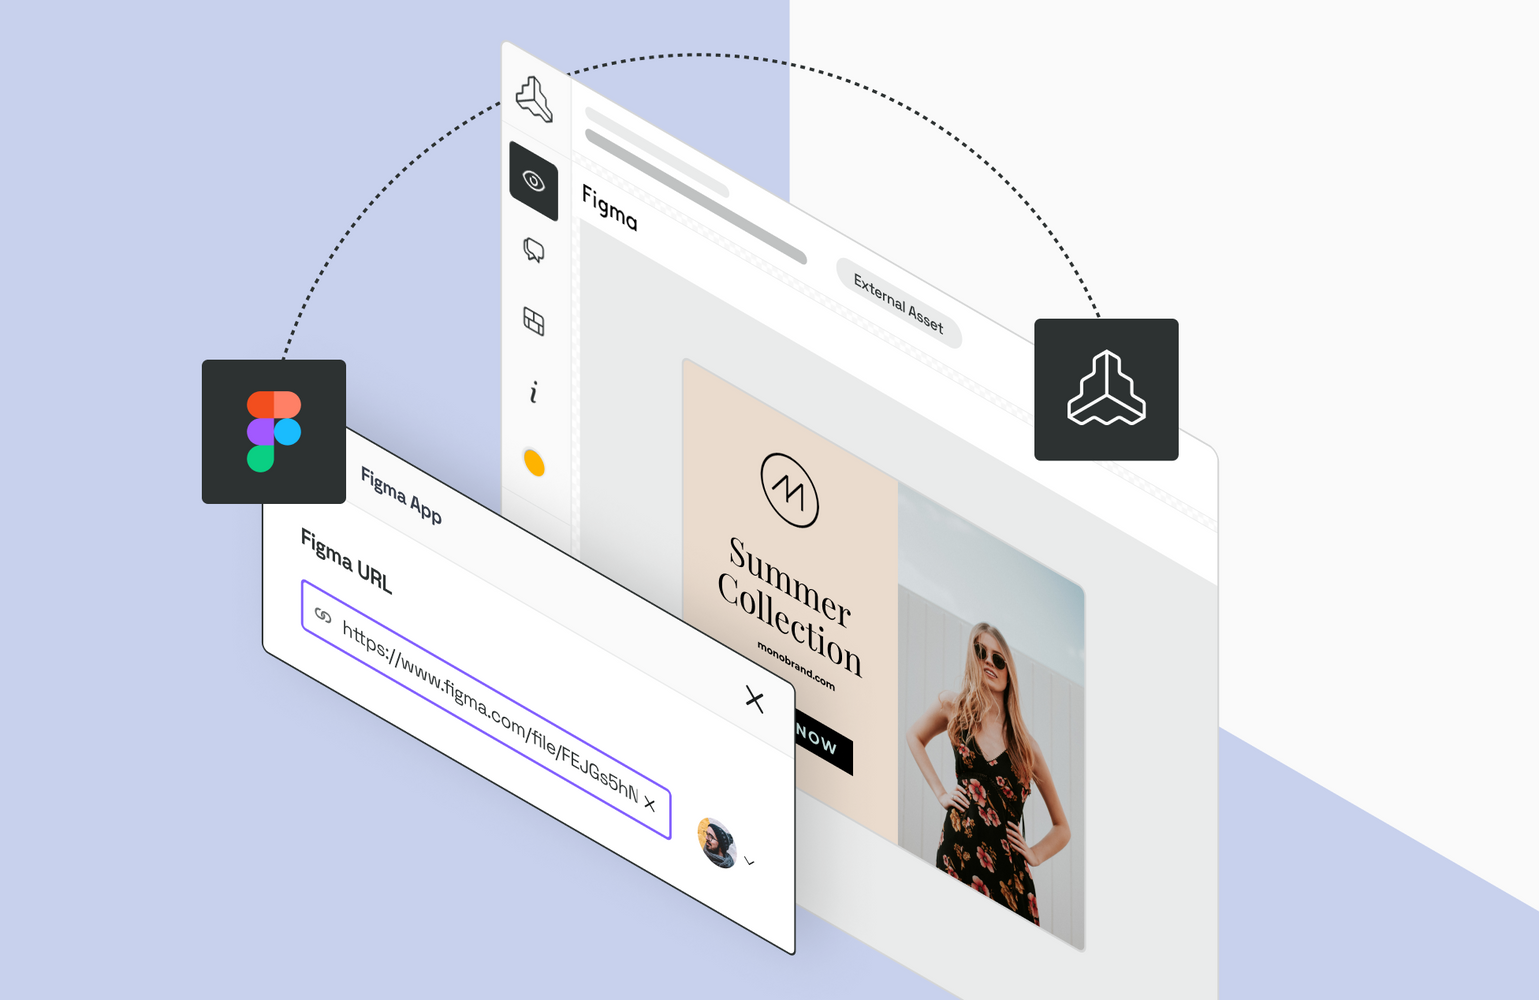 Introducing the Figma App